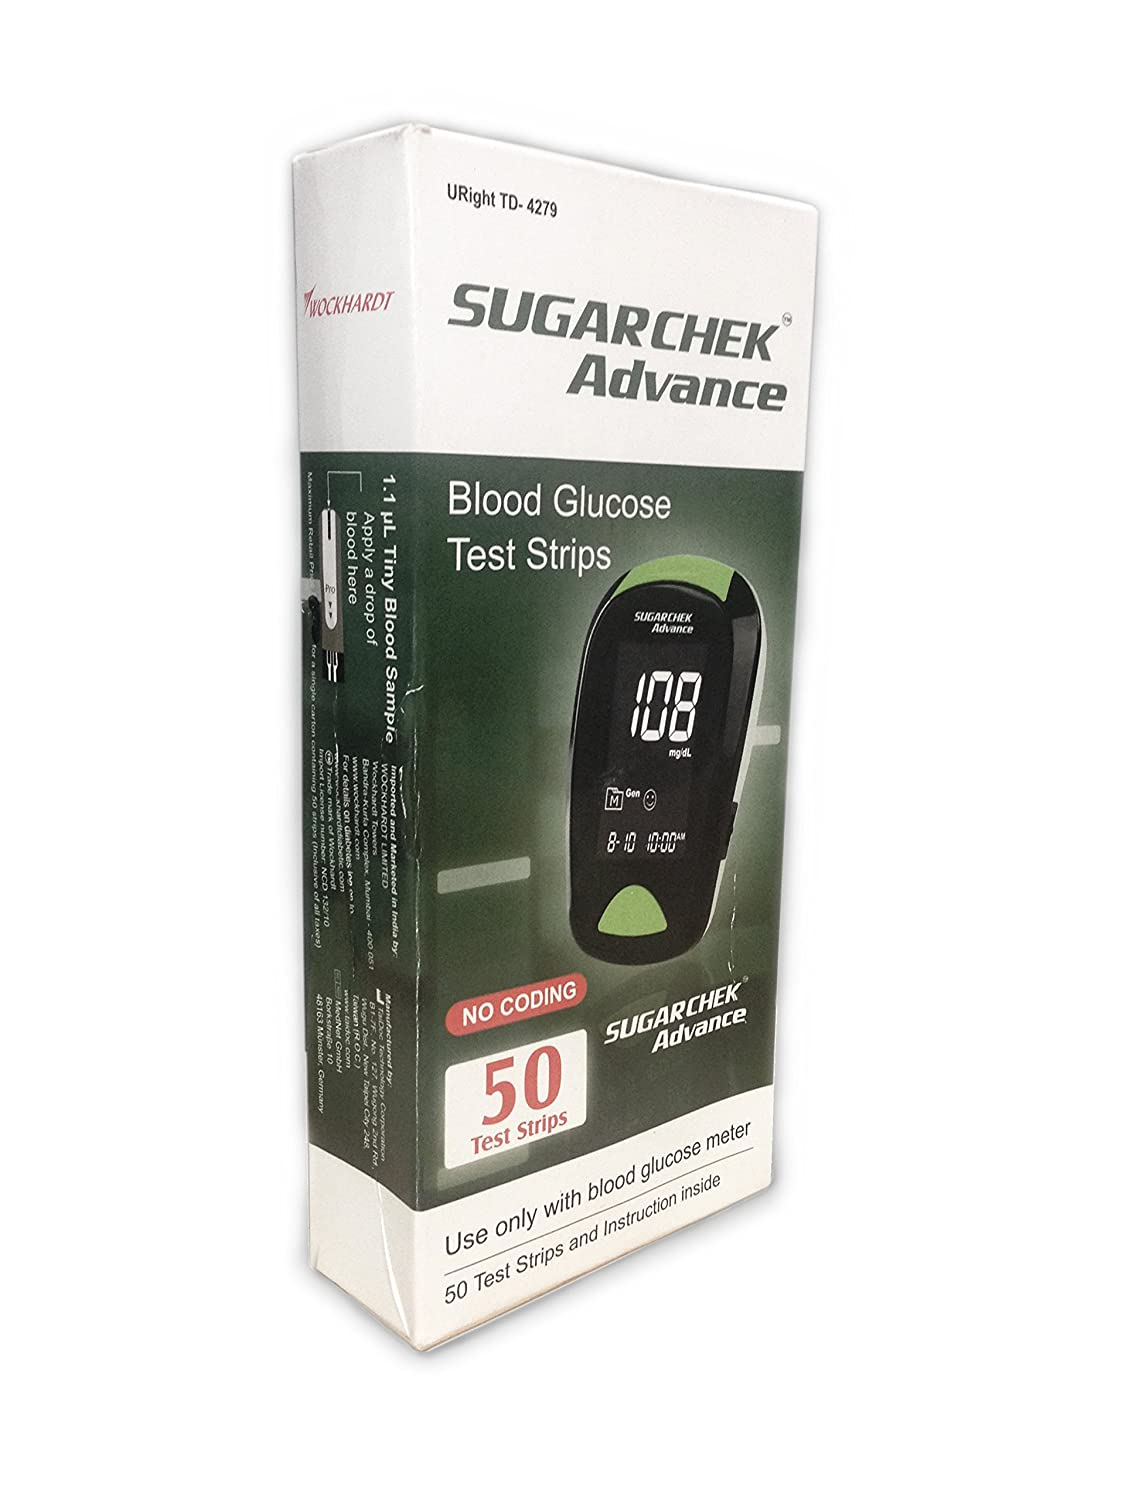 Amazon.com: Sugarchek Advance 50 Count Blood Glucose Test Strips, FDA Approved: Health & Personal Care